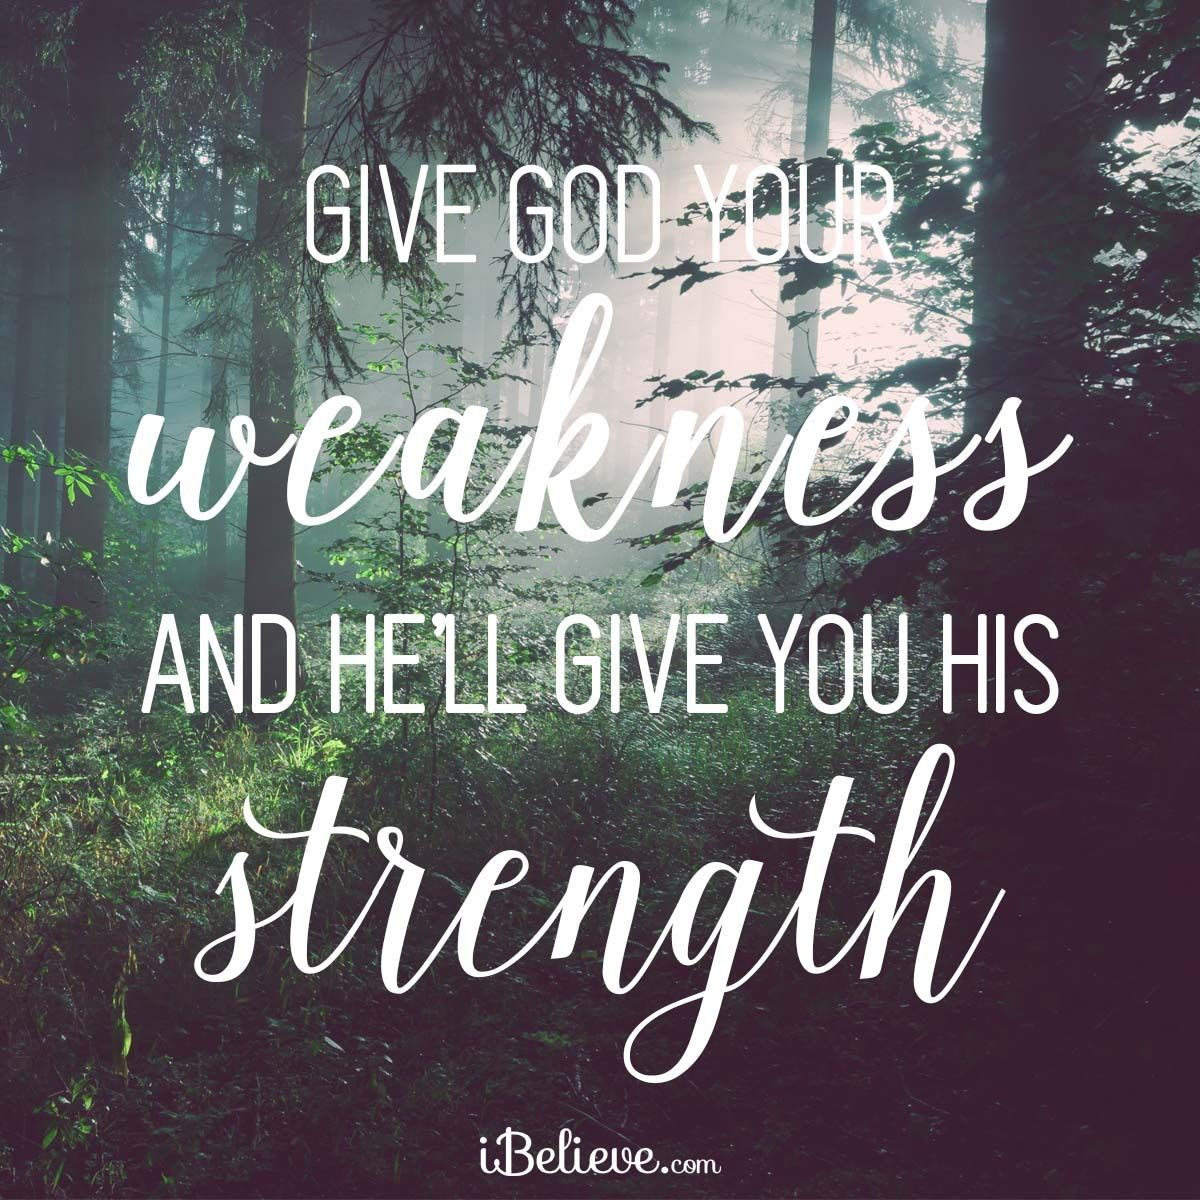 I Love You Quotes: Give God Your Weakness And He'll Give You His Strength